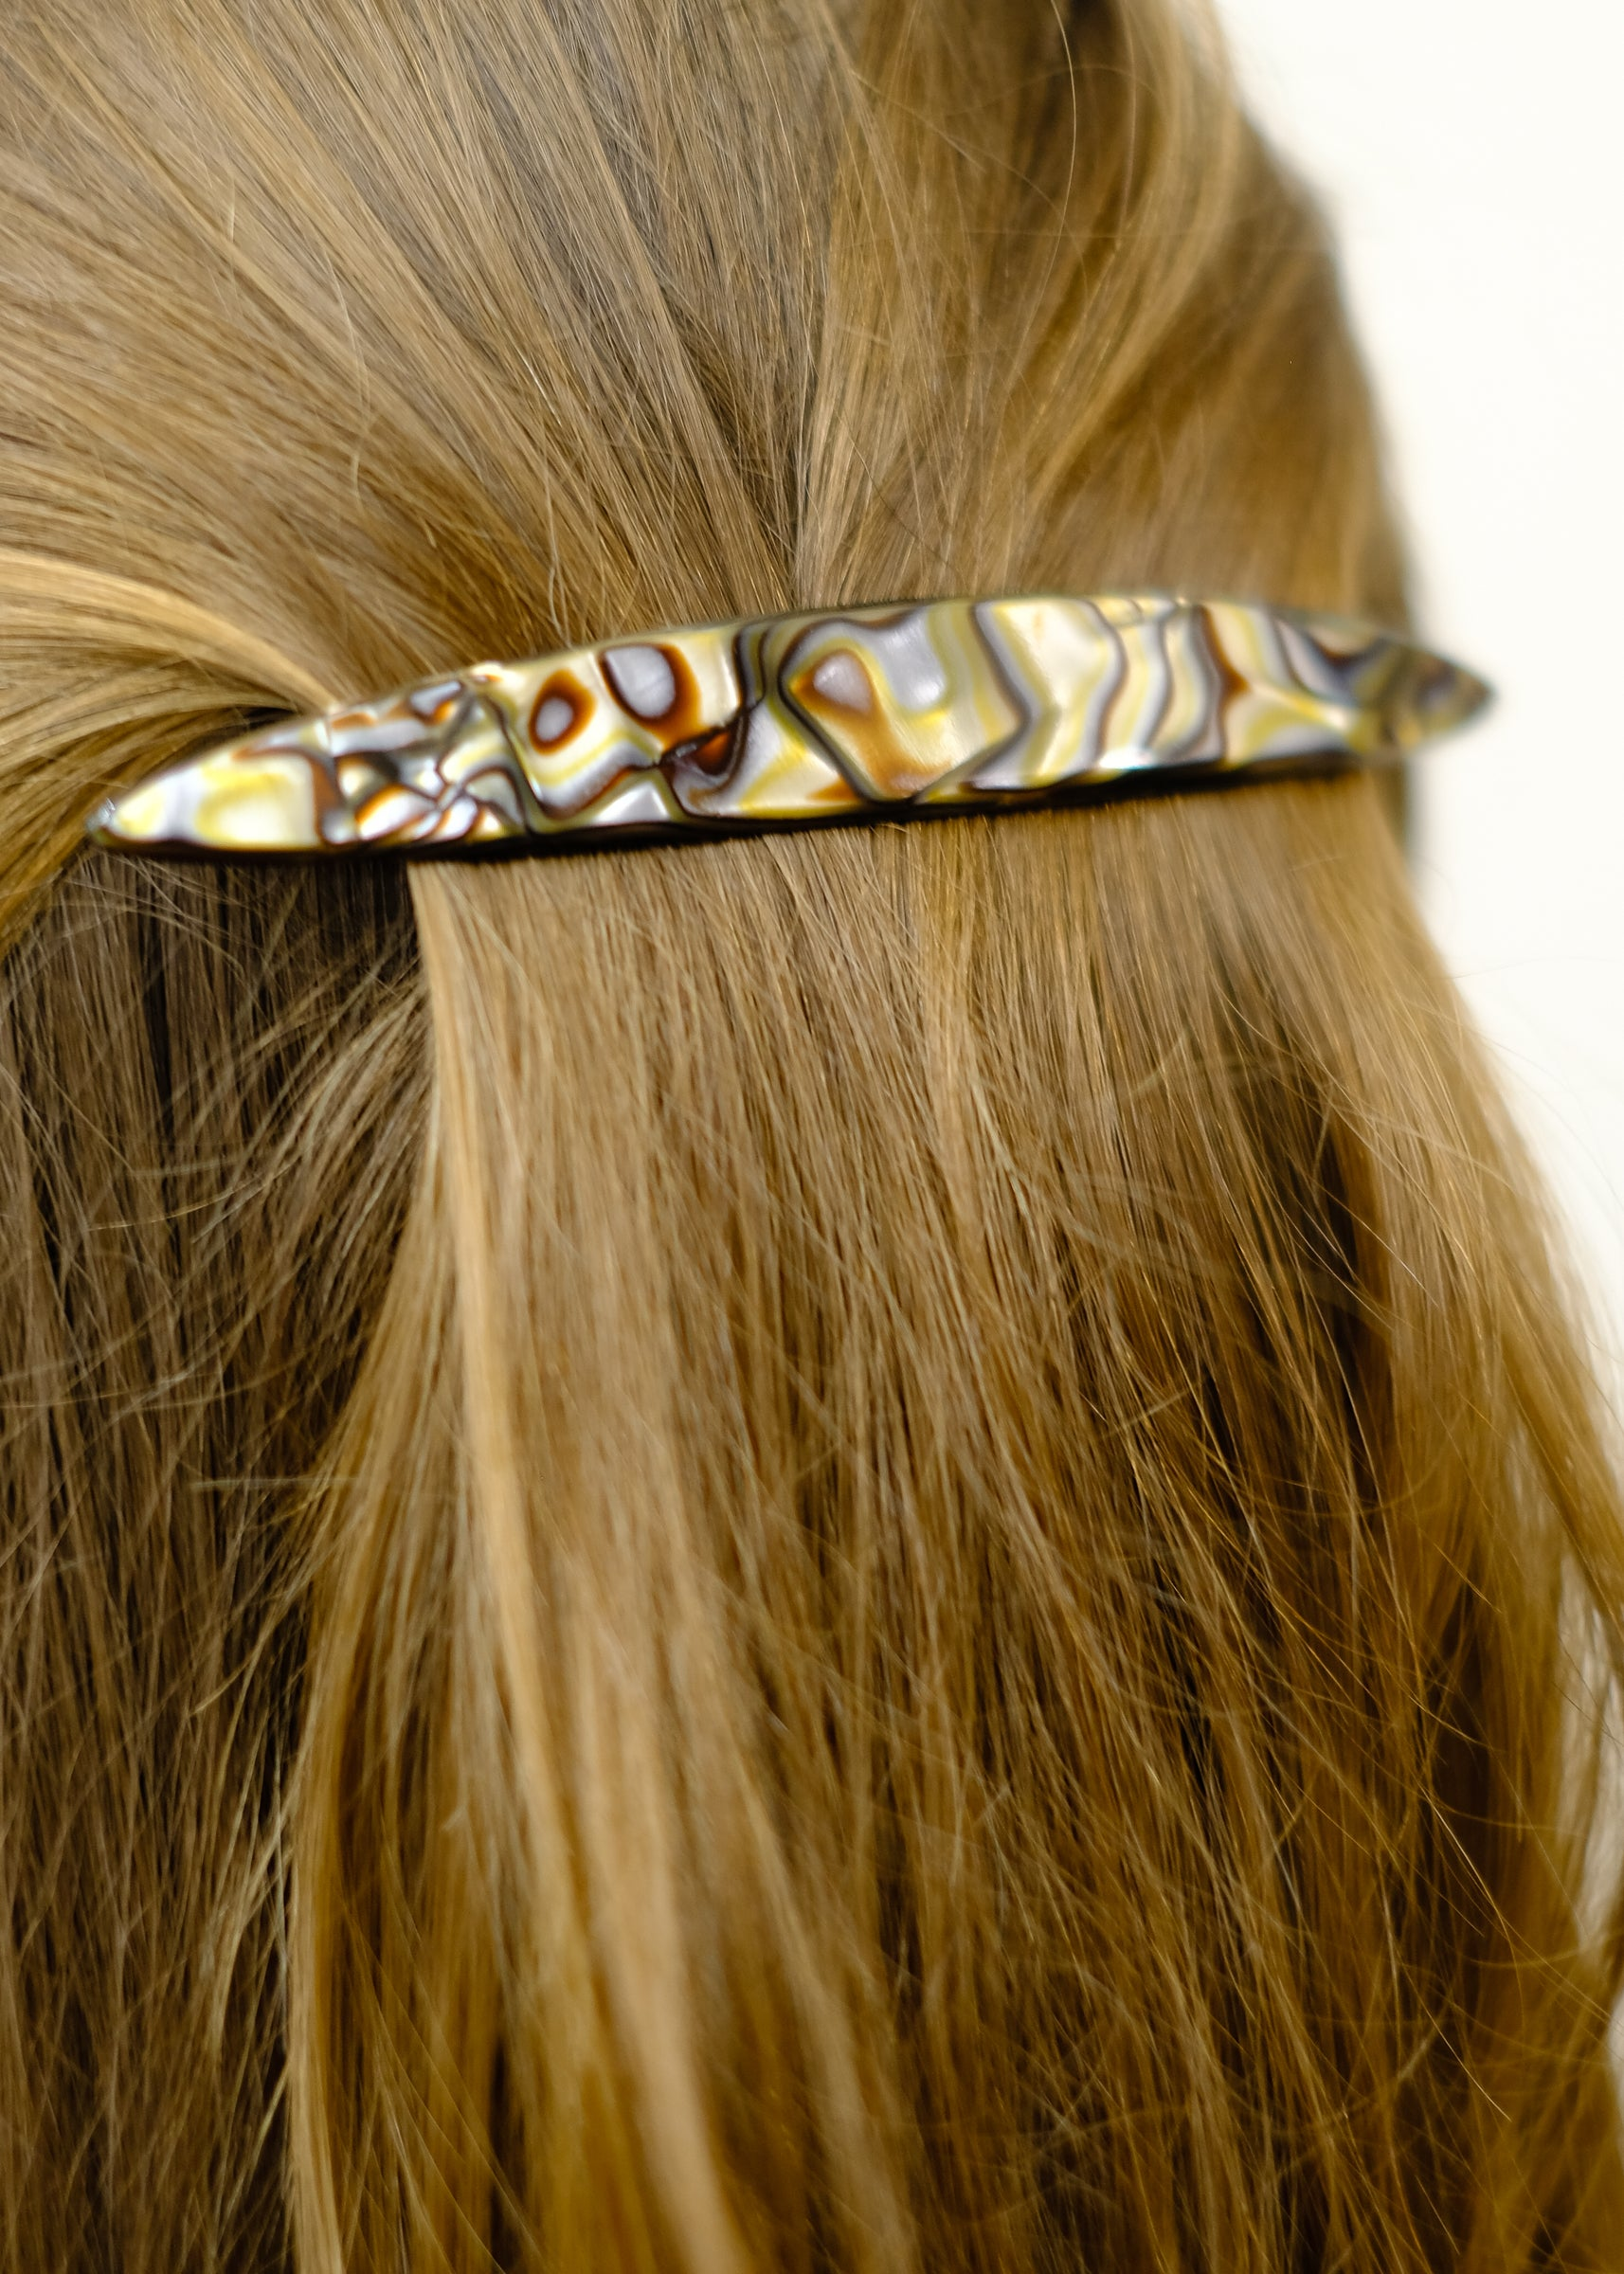 Oblong Long and Skinny Barrette - Classic